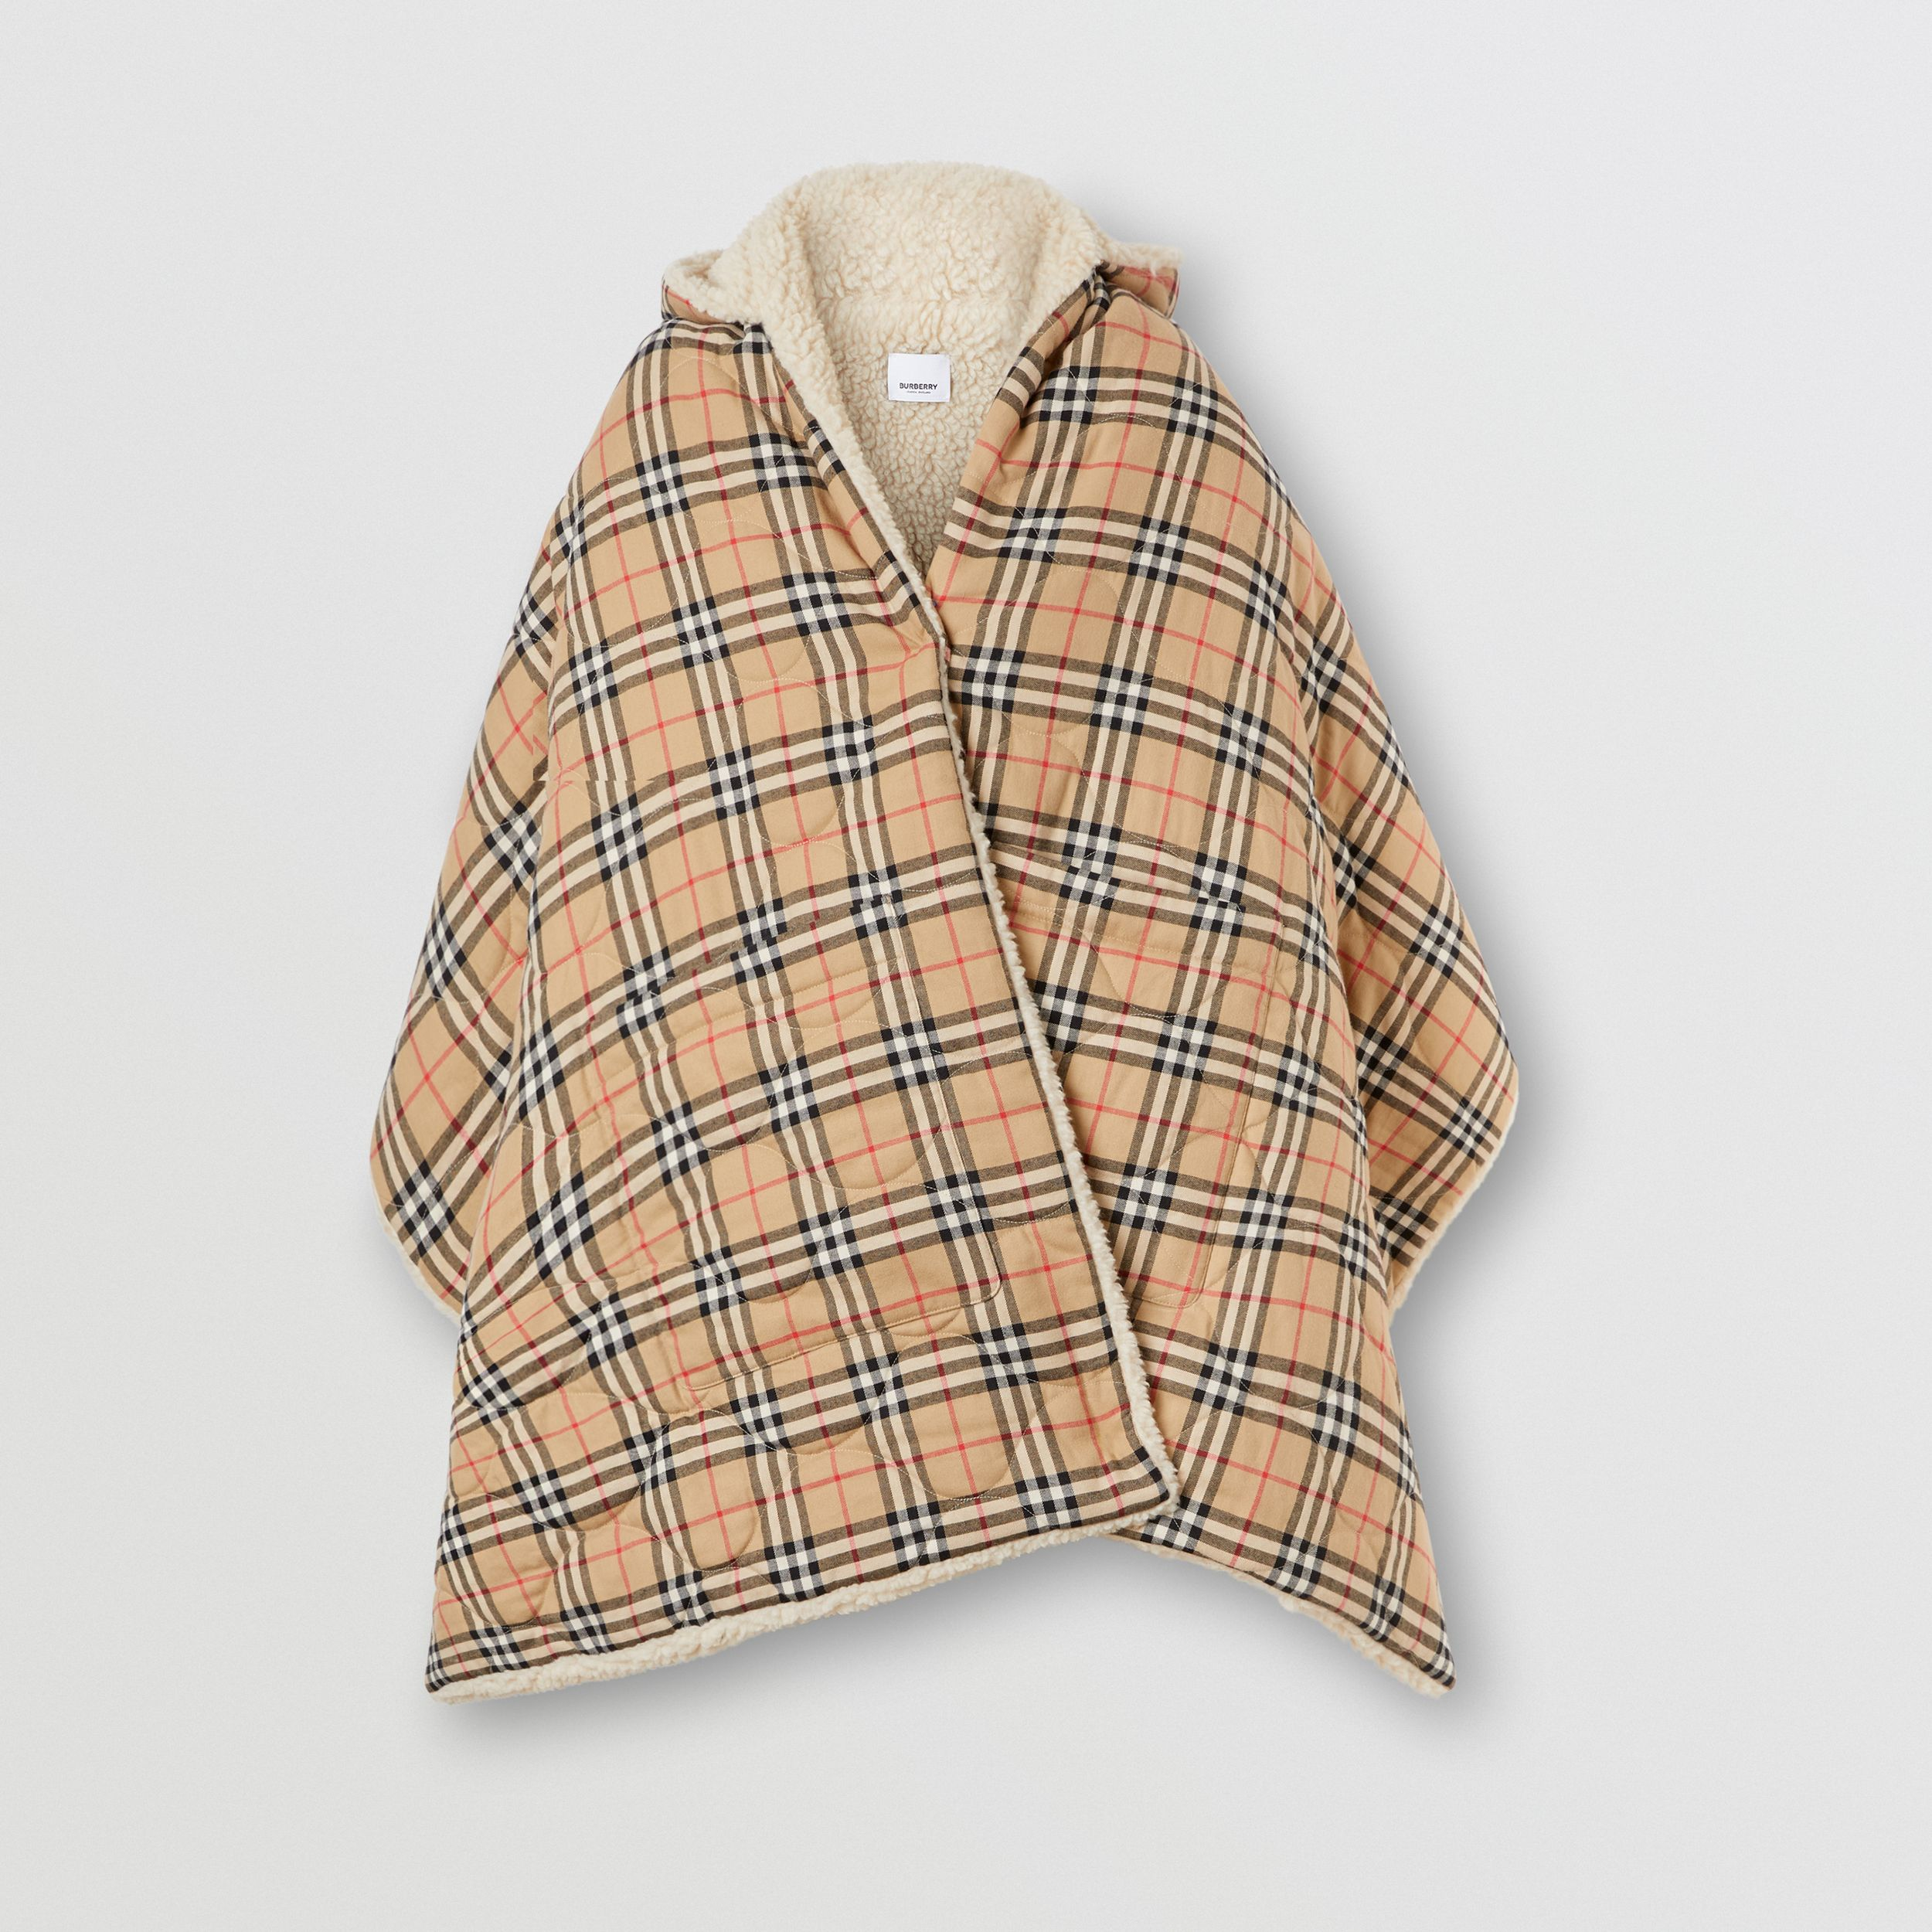 Fleece-lined Vintage Check Cotton Hooded Cape in Camel - Women | Burberry United States - 4